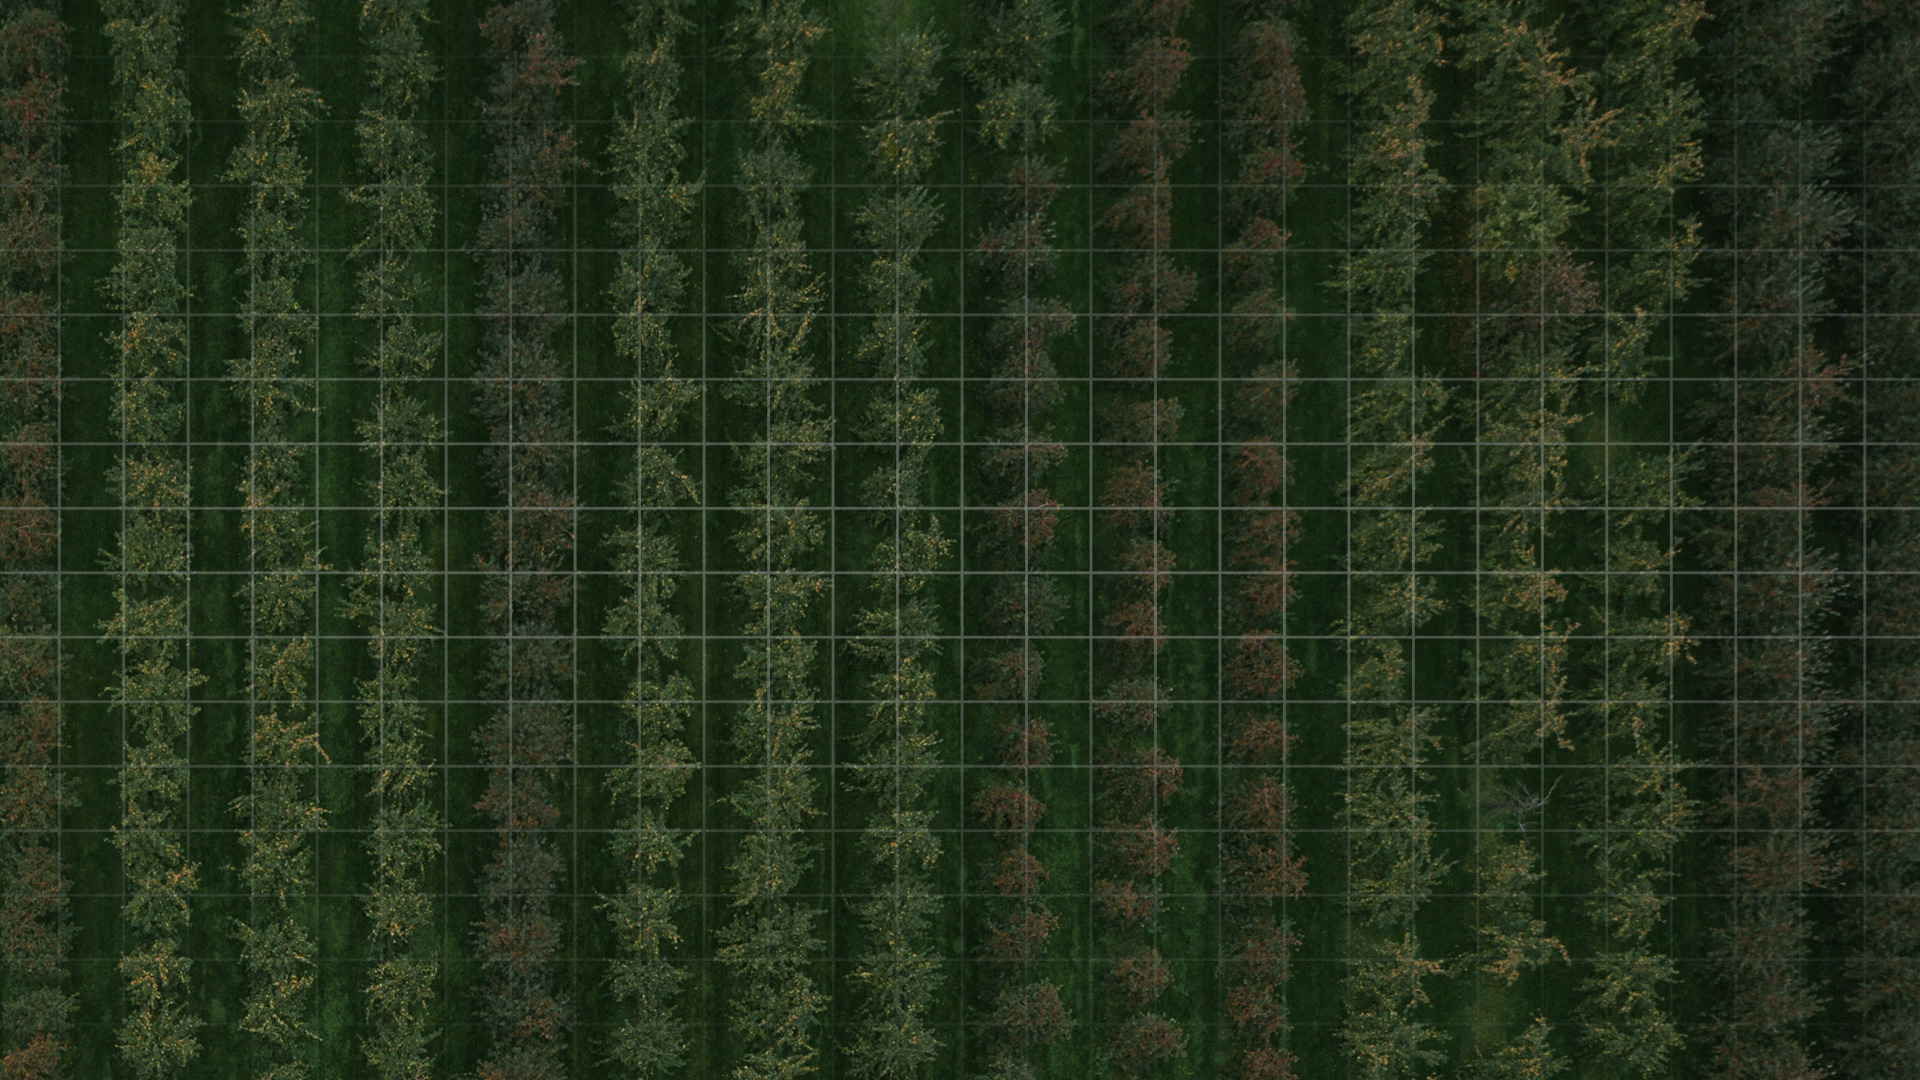 bird eye view of tree farm